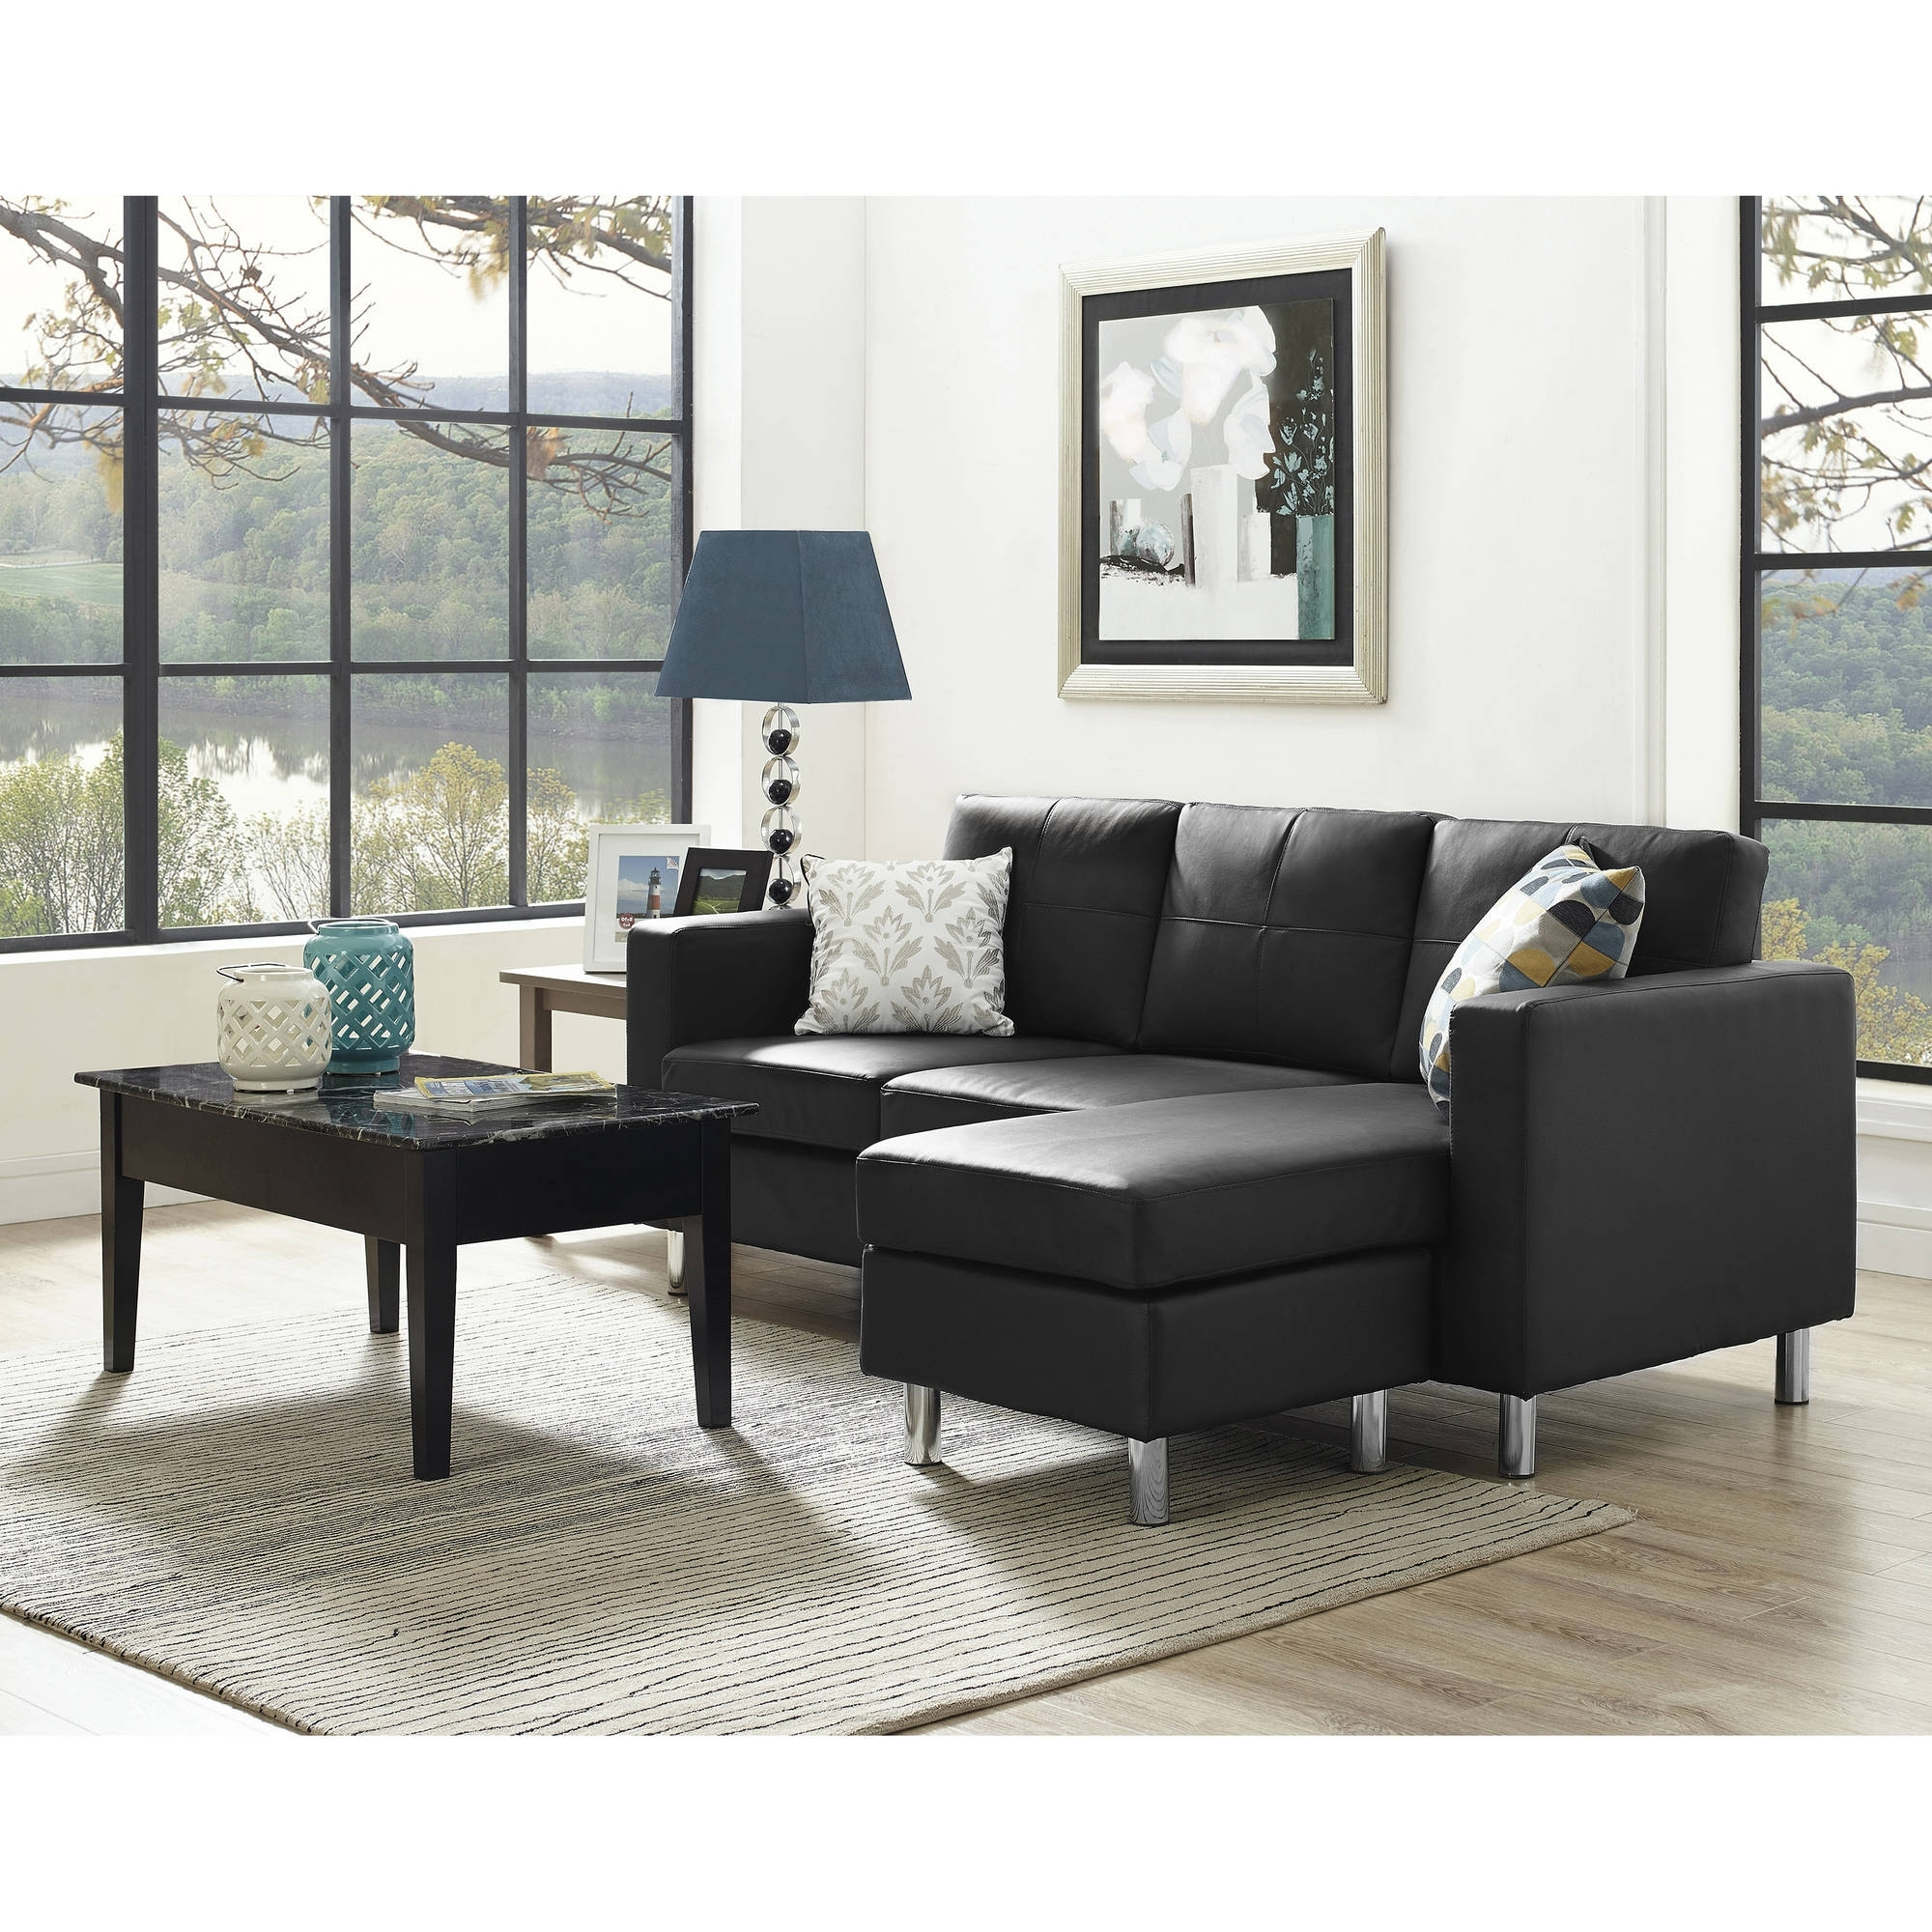 Most Up To Date Sectional Sofas With Recliners For Small Spaces Regarding Furniture & Sofa: Perfect Small Spaces Configurable Sectional Sofa (View 19 of 20)